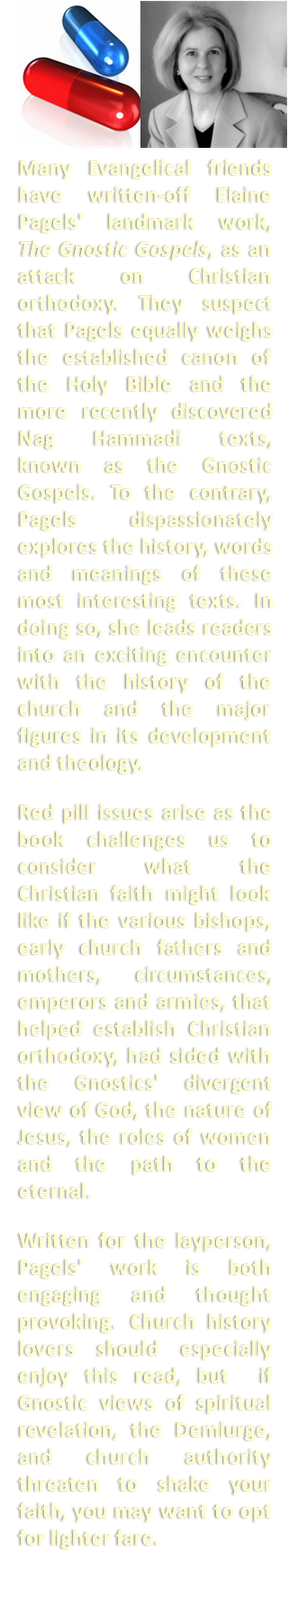 The Red Pill Offering: The Gnostic Gospels